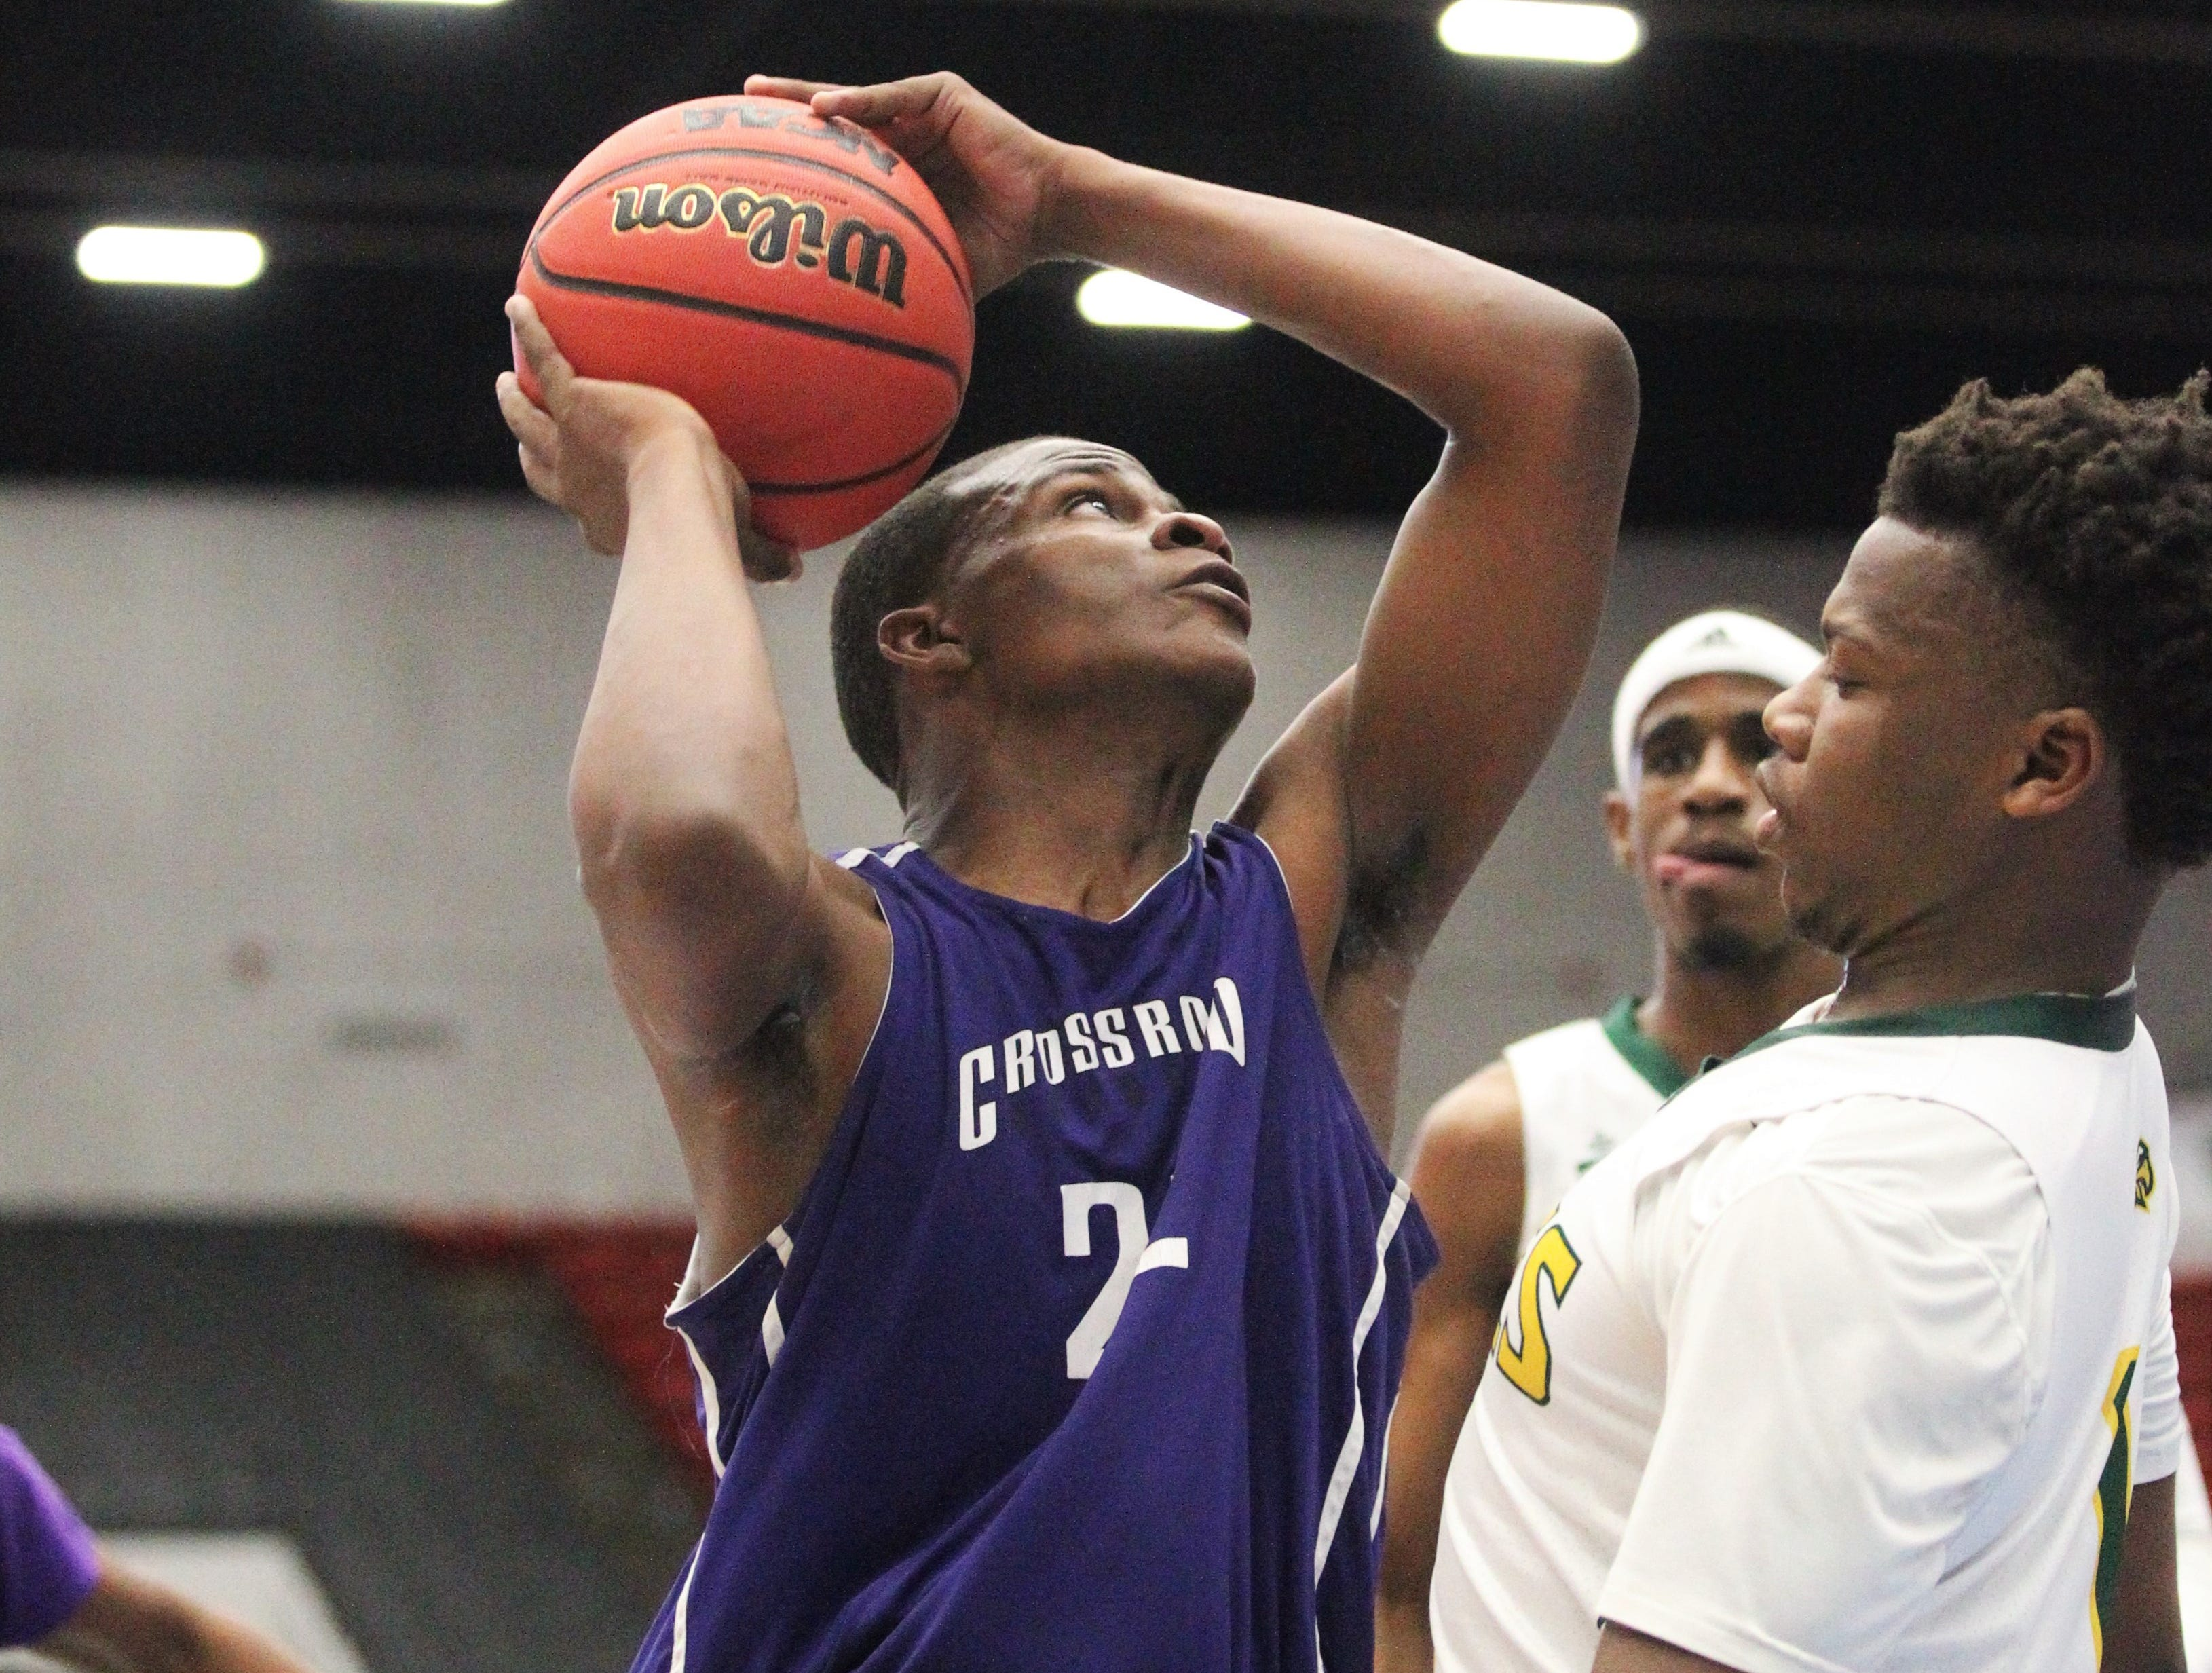 Crossroad Academy fell 59-44 to Central Florida Christian during a Class 2A state semifinal at the RP Funding Center in Lakeland on March 4, 2019.